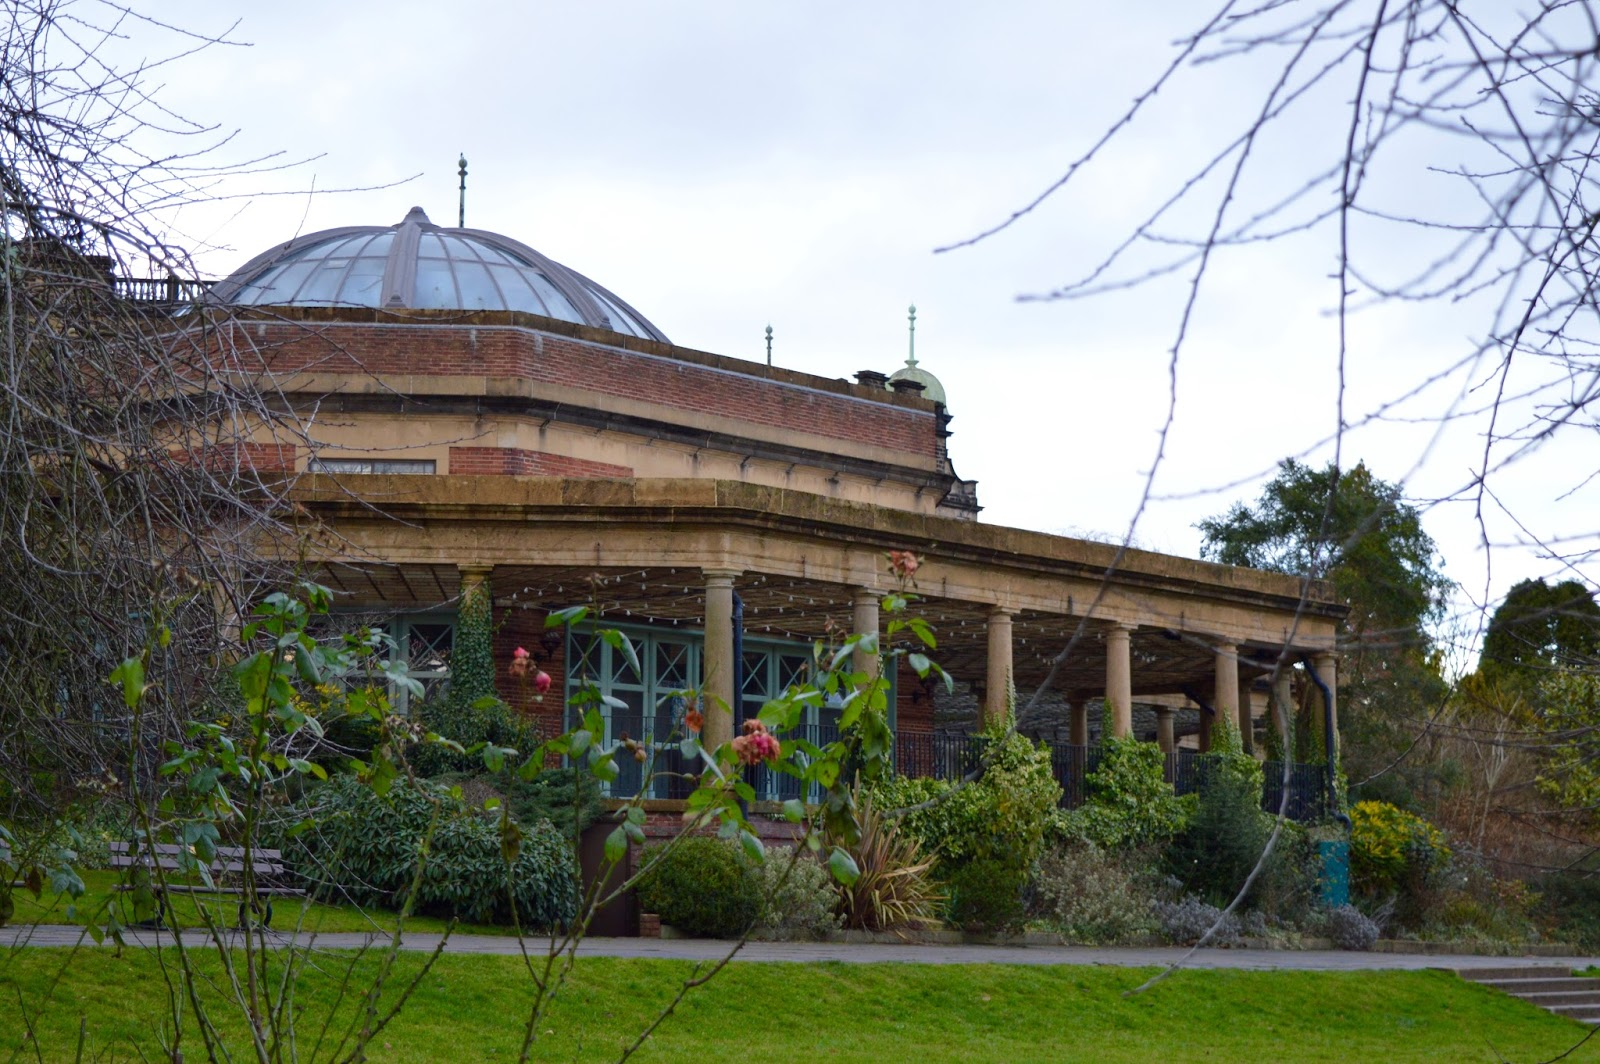 What to do in Valley Gardens, Harrogate | Play area, Pitch & Putt, events & more - sun pavillion